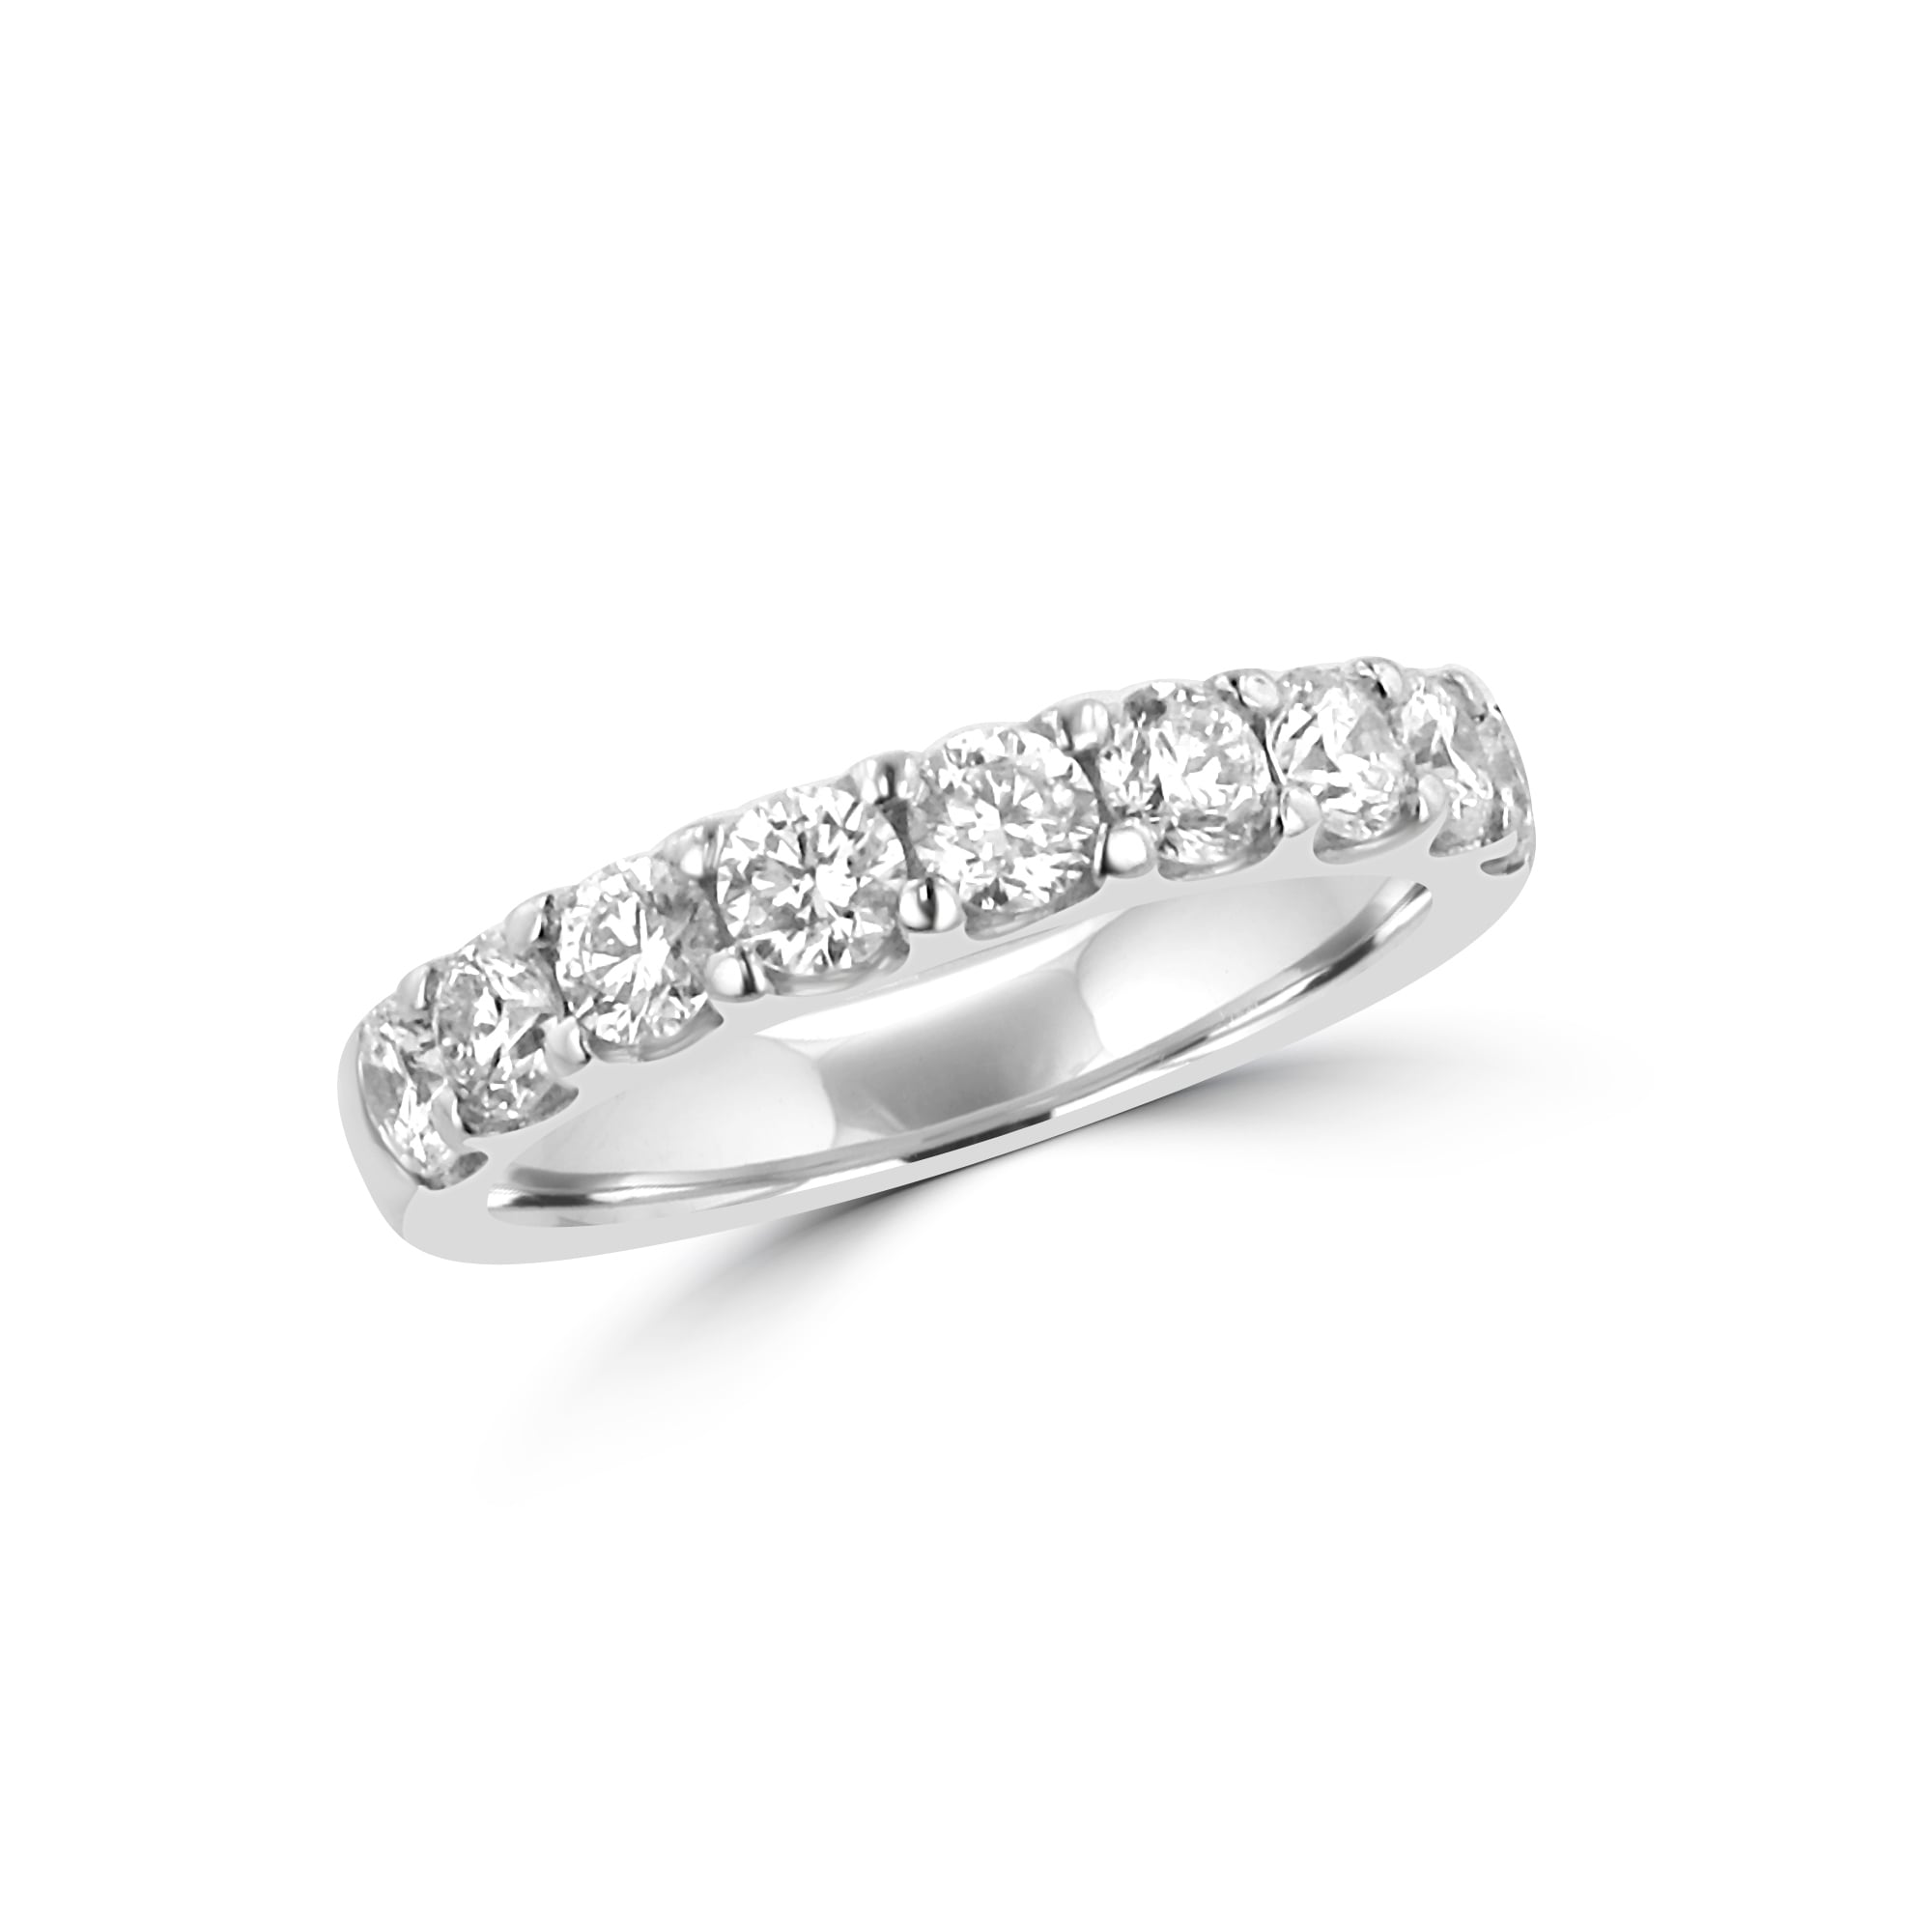 h collections rings gold products stone size ct total stackable band round ring white diamond bands